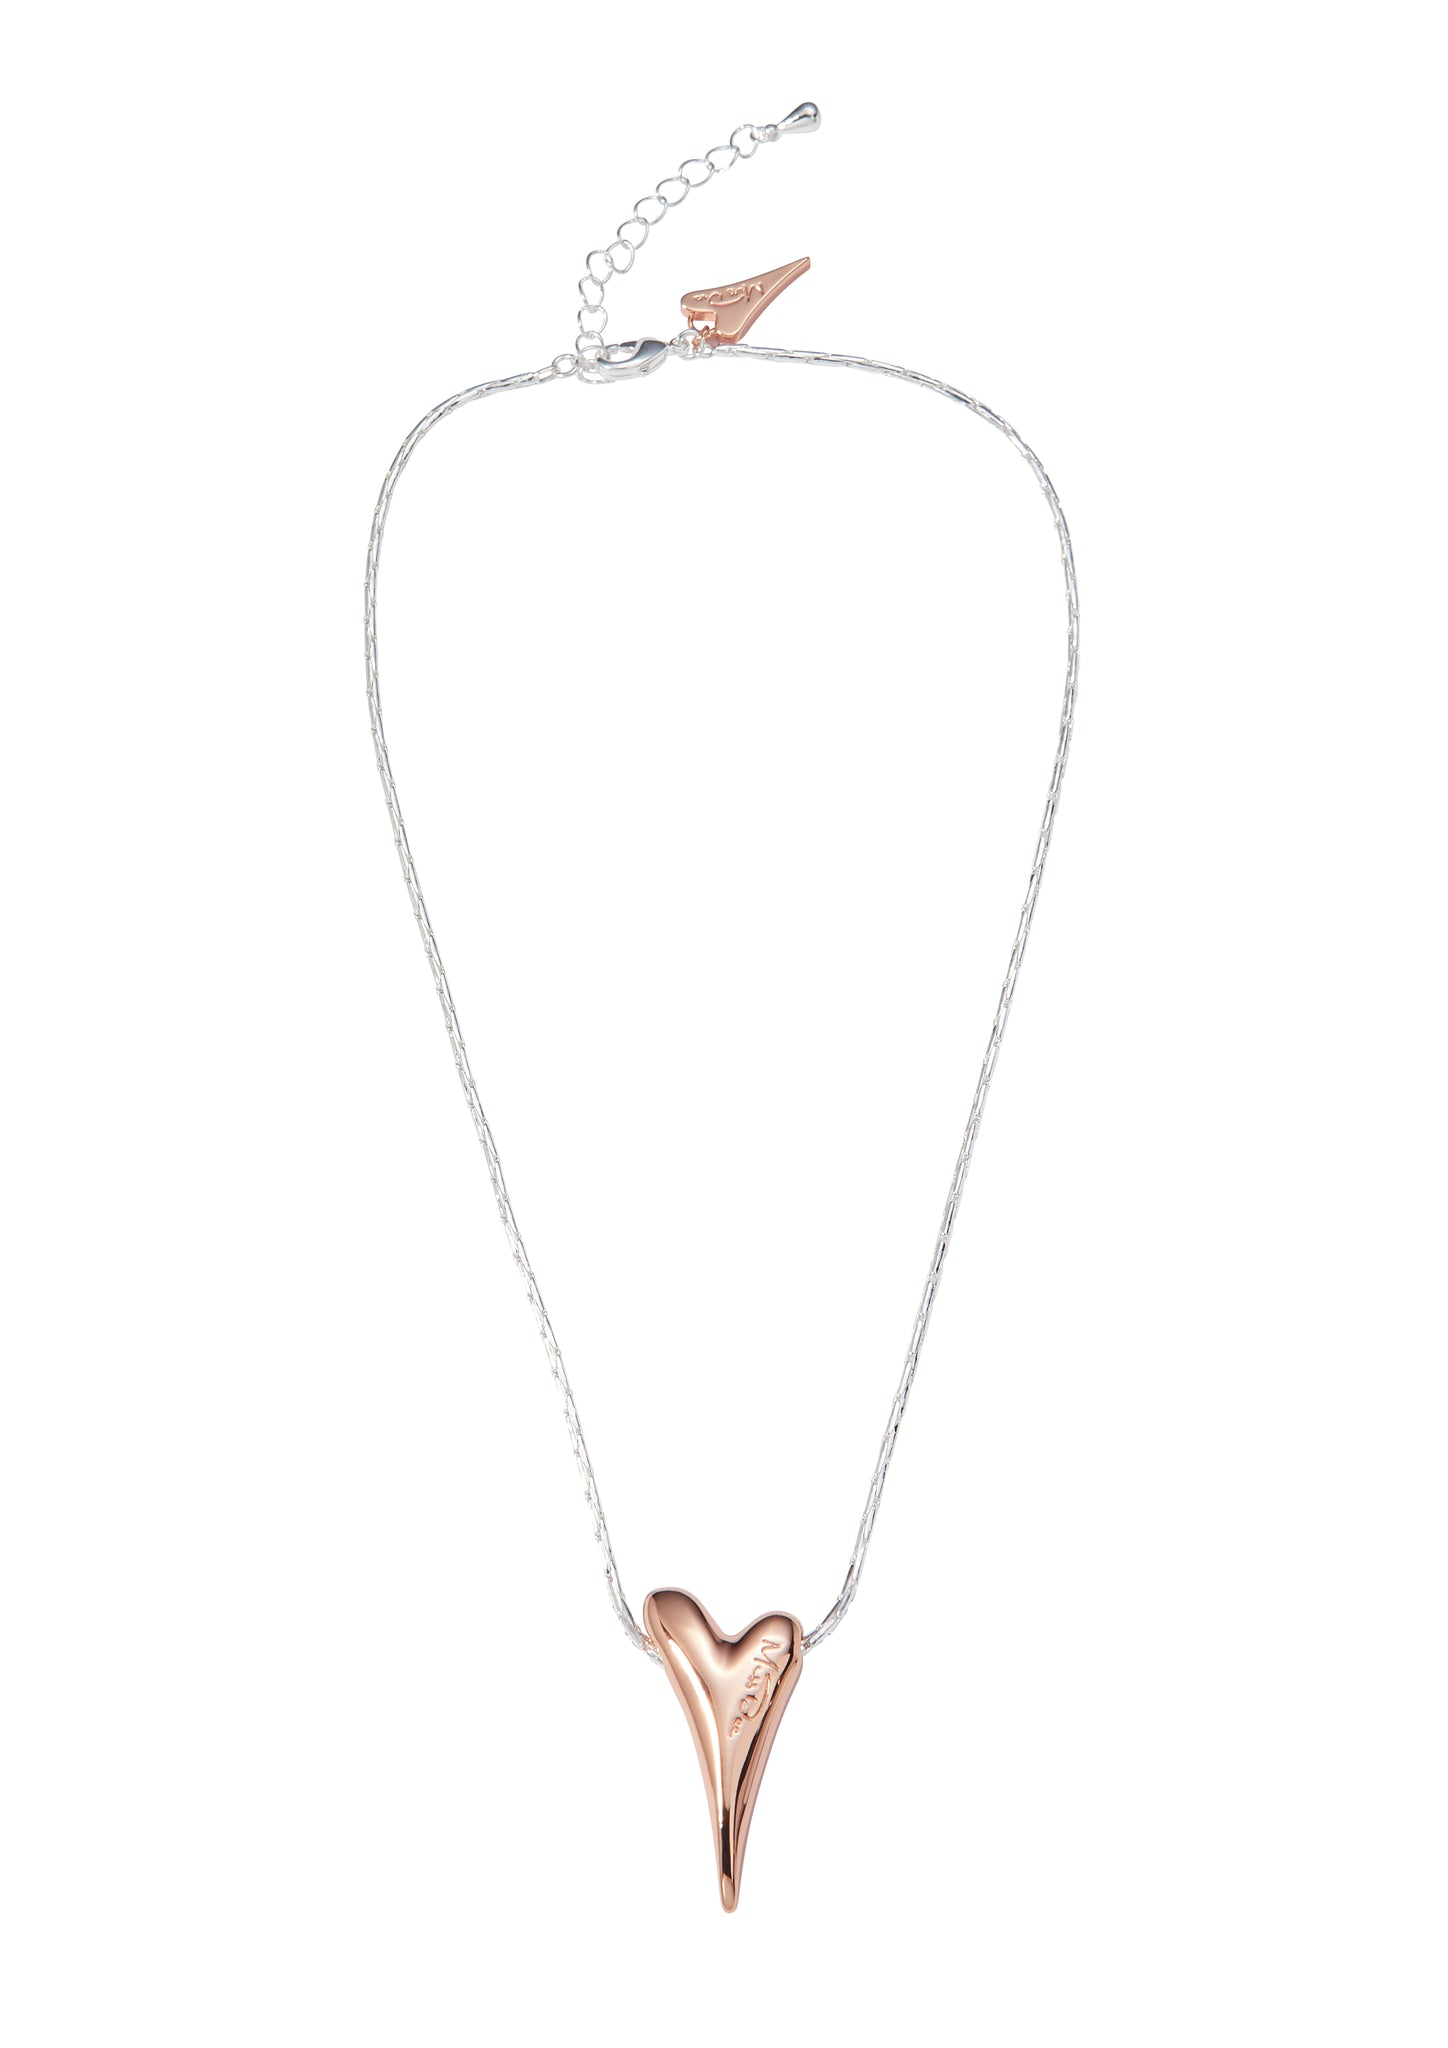 Two-Tone Silver/Rose Heart Necklace - MD1800664